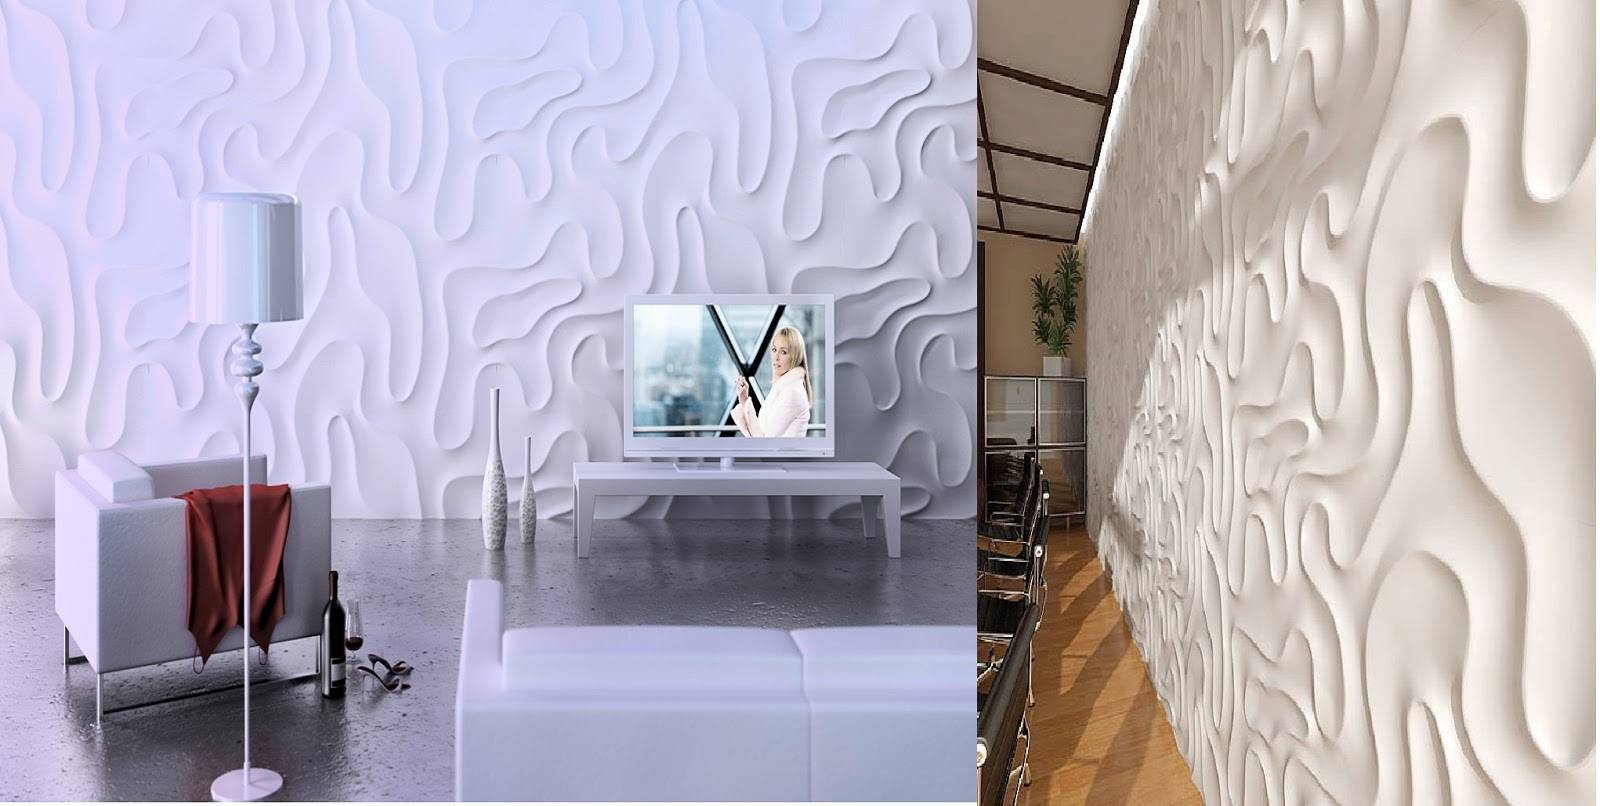 Decorative 3d Wall Panels For Unusual Wall Decor 2017 In Most Up To Date Painting 3d Wall Panels (View 8 of 20)